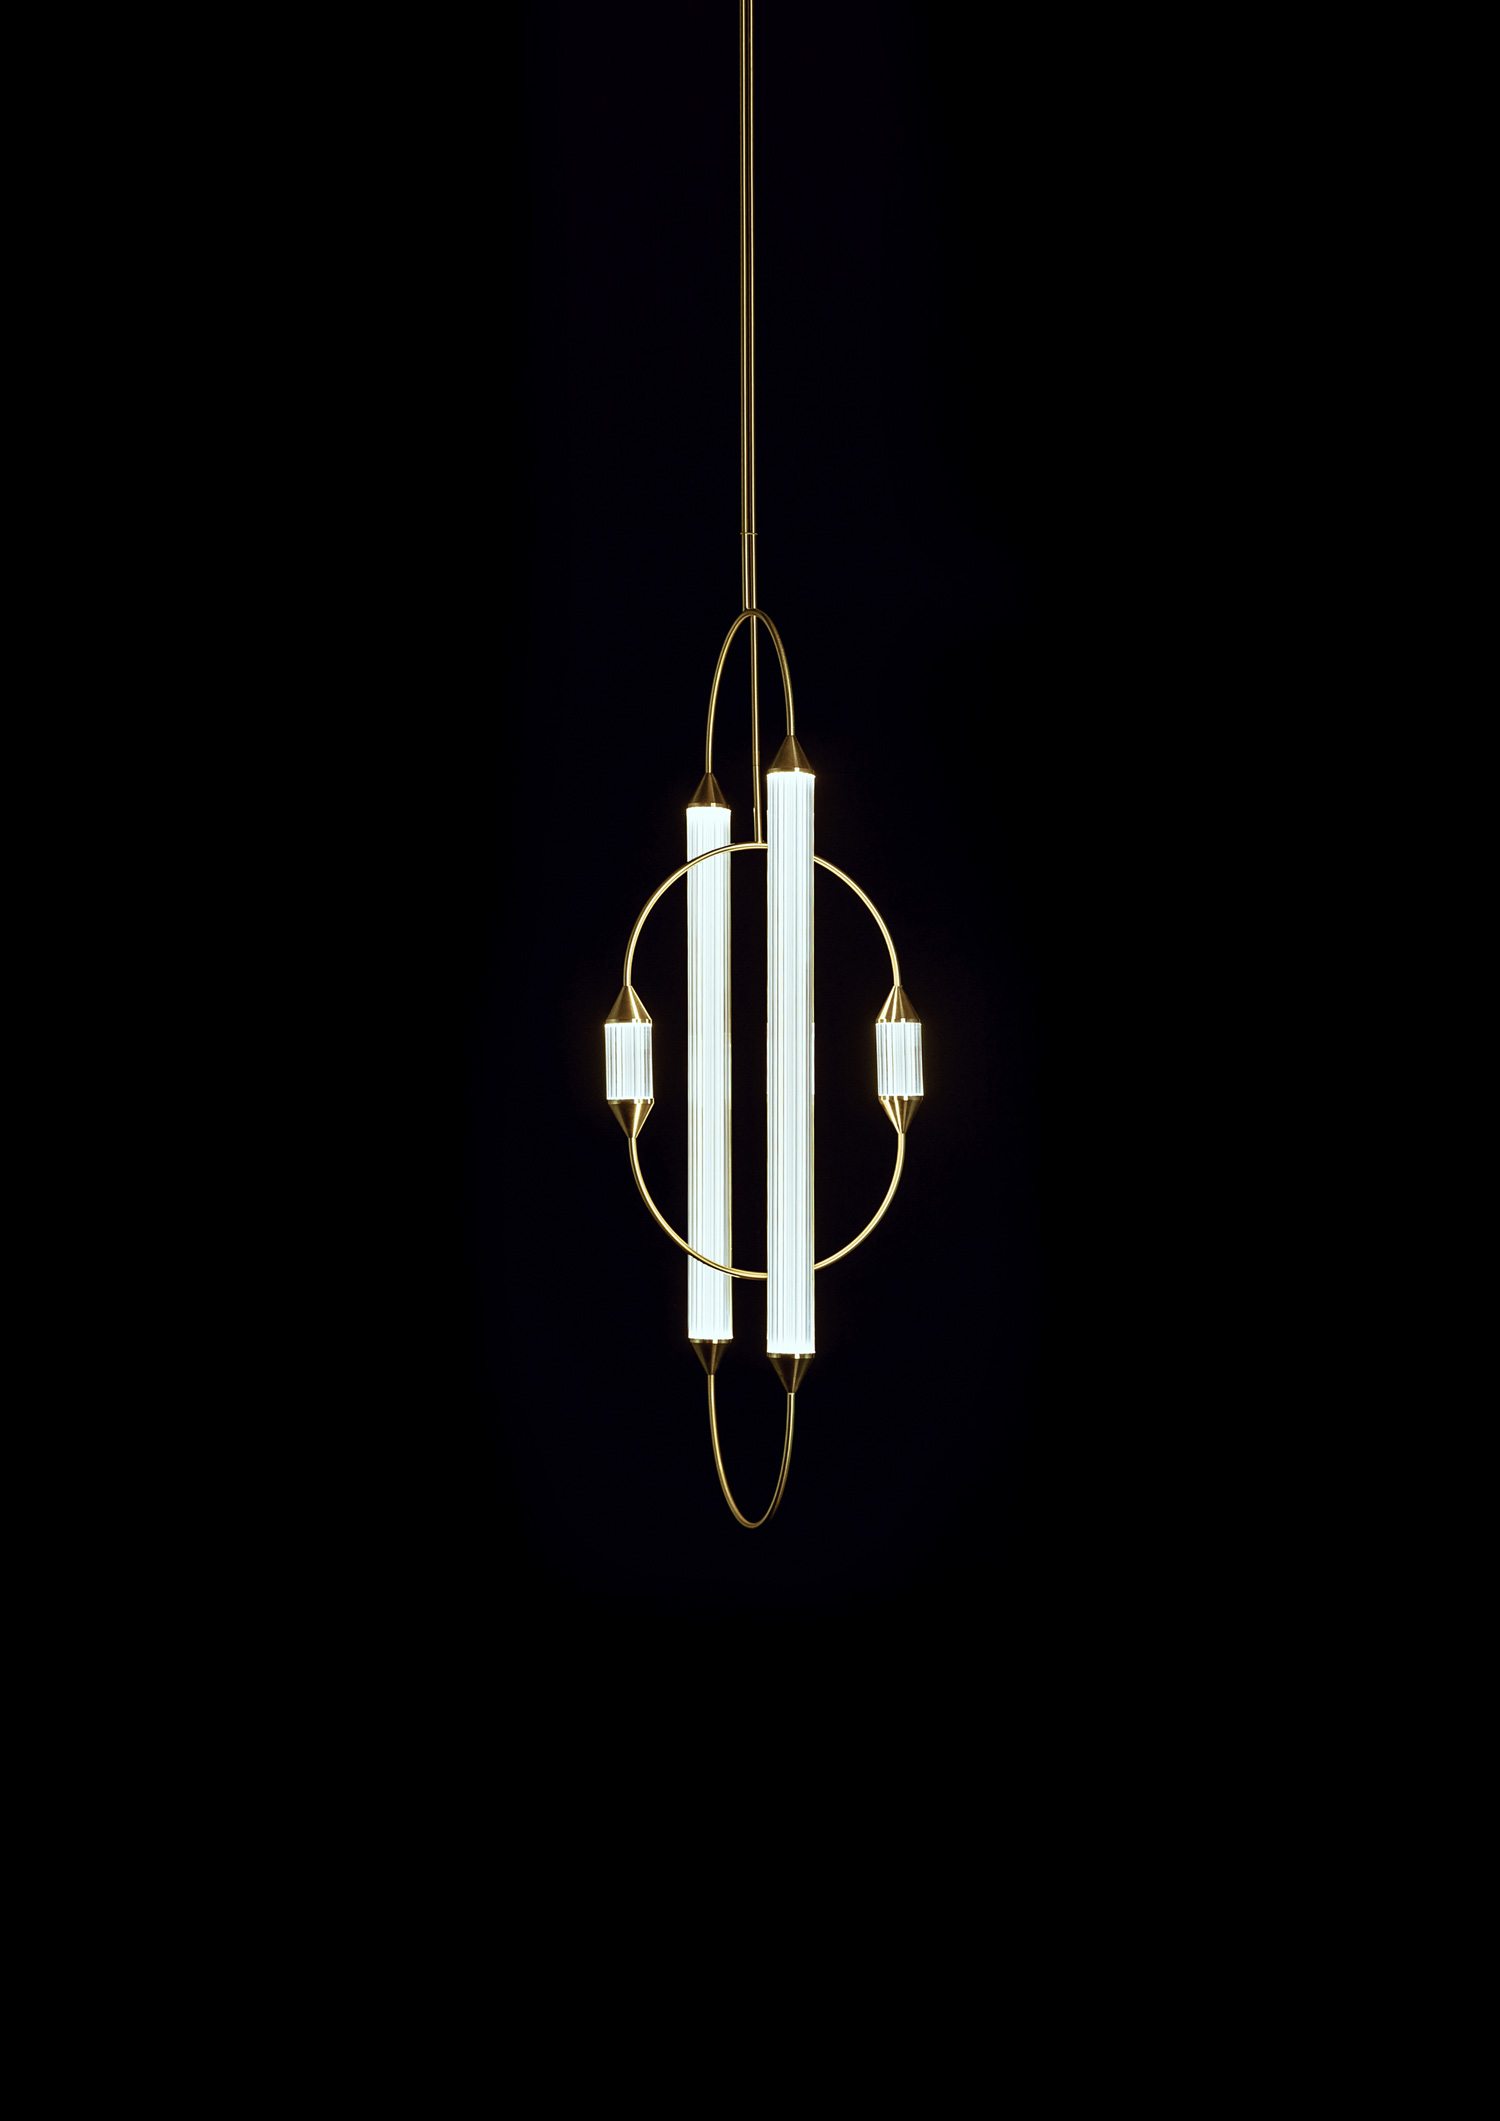 Giopato_Coombes_Cirque_Chandelier_5_Medium_2_Ph_JonBronxl.jpg